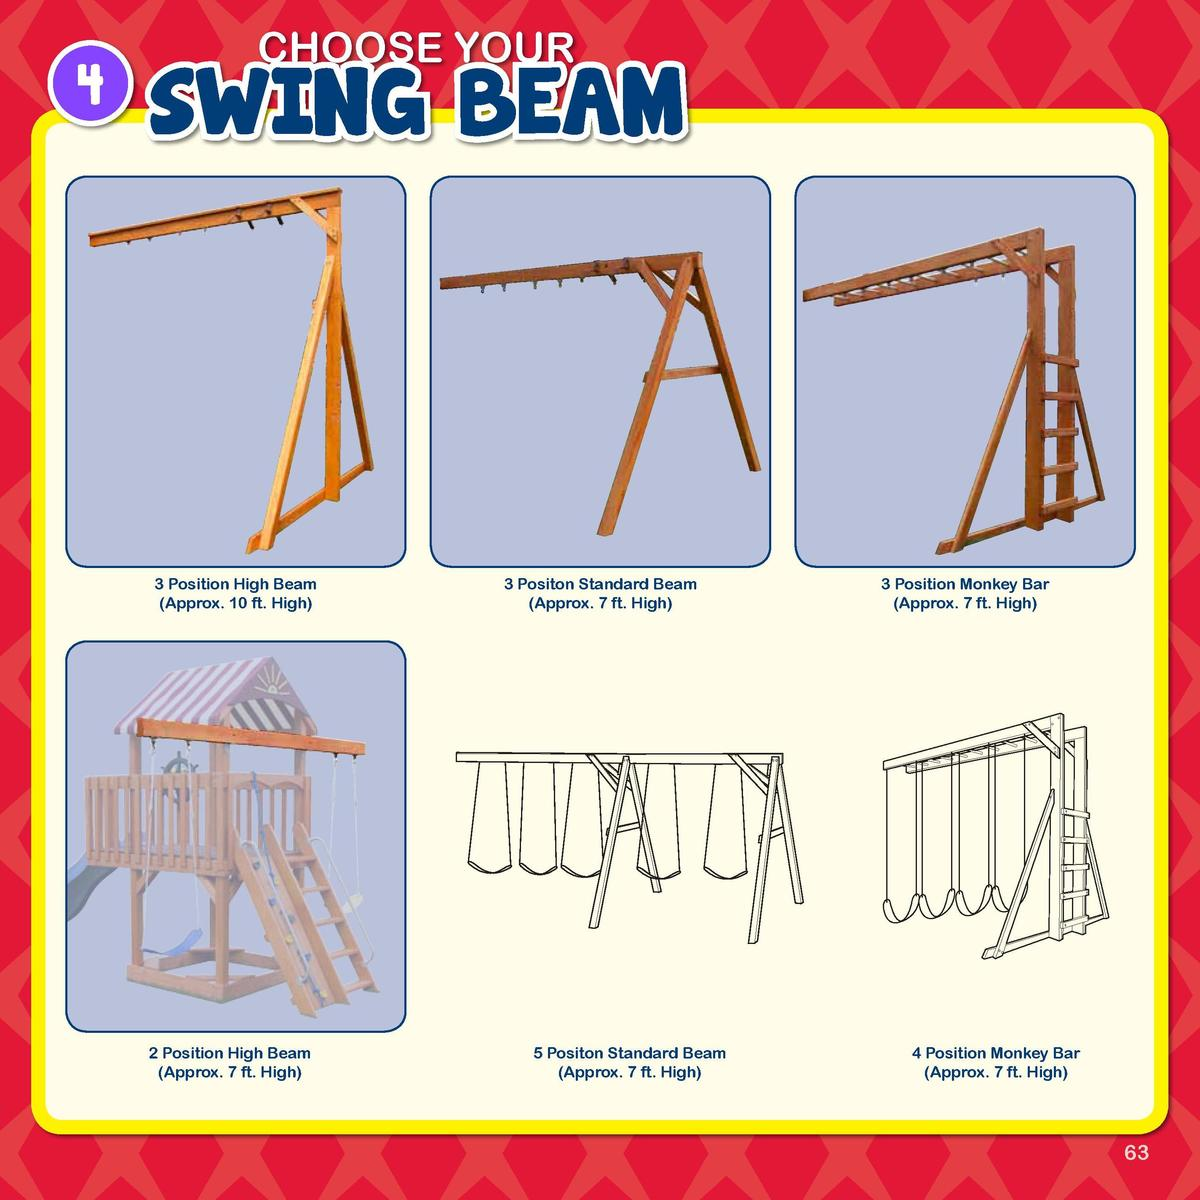 4  6x8 Playdeck  4x6 Playdeck  CHOOSE YOUR  SWING BEAM  Mountain Climber  3 Position High Beam  Approx. 10 ft. High   3  3...